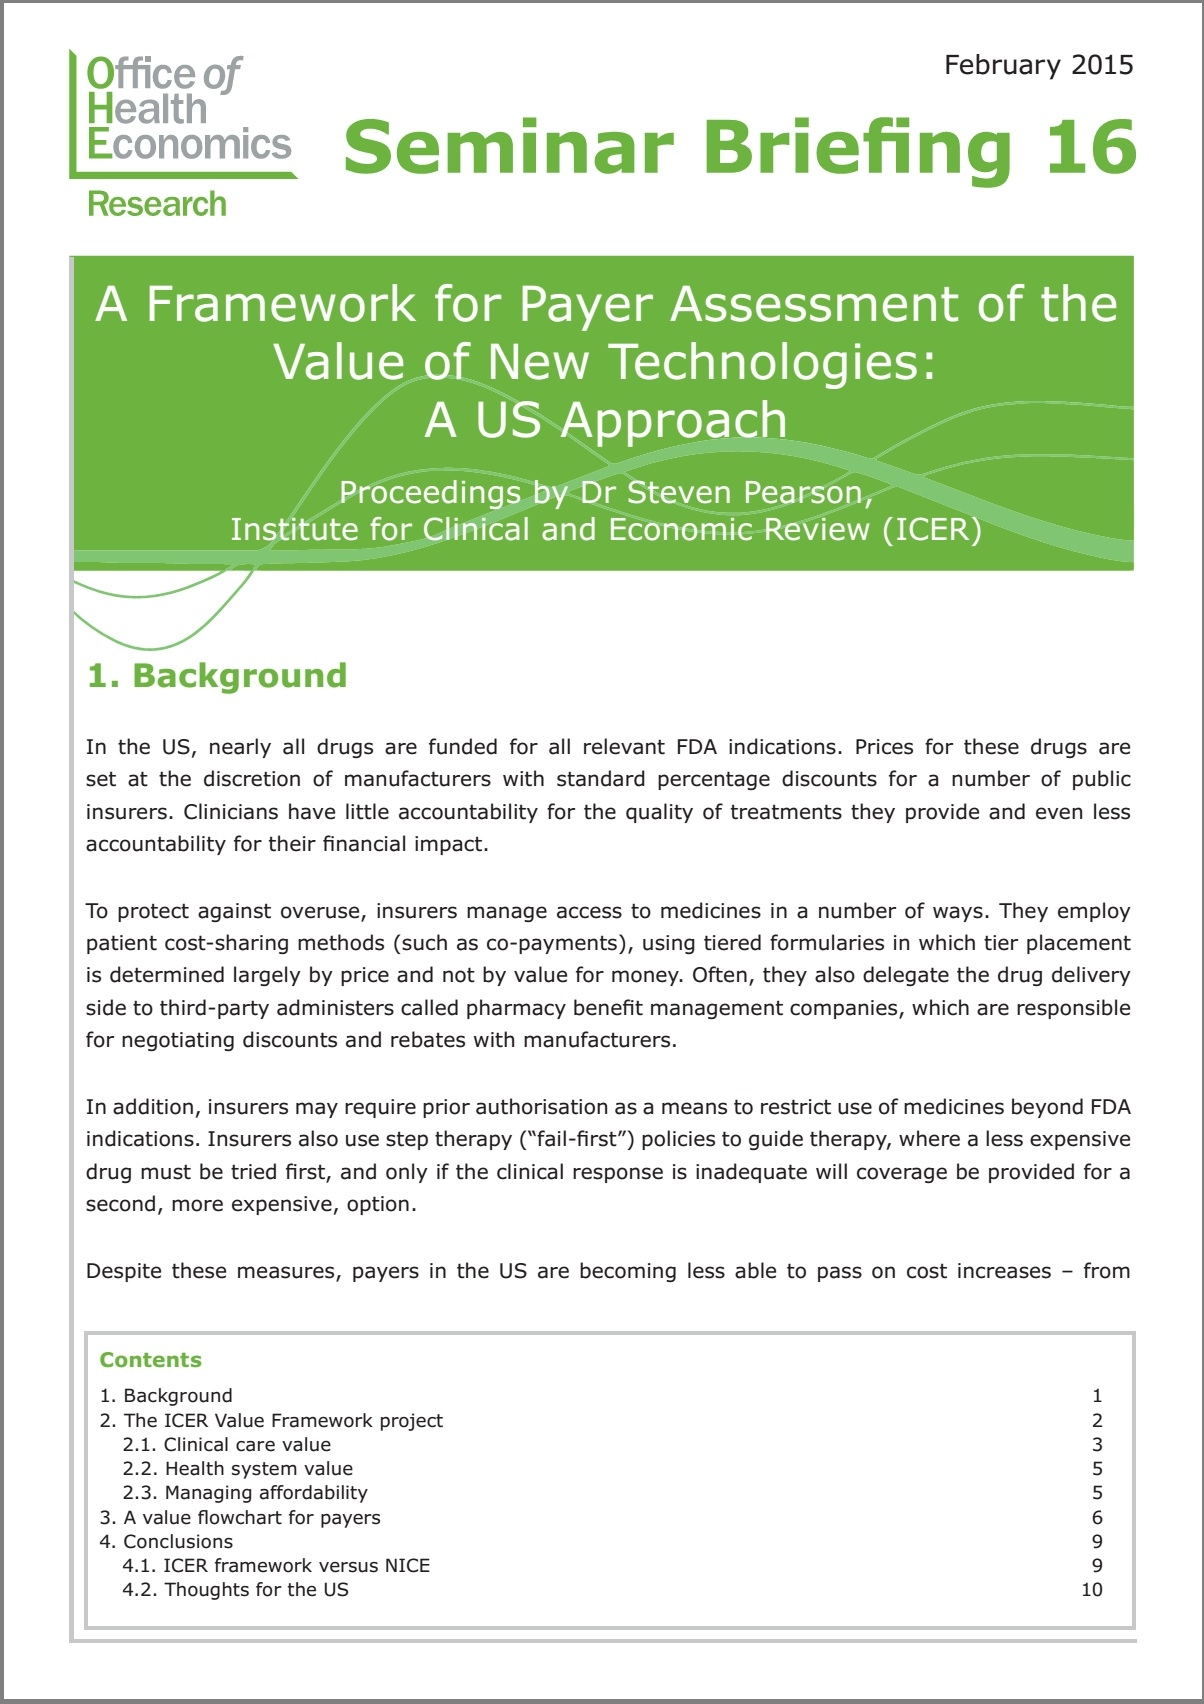 Framework For Payer Assessment Of Value Of New Technologies Assessment, process of setting a value on real or personal property, usually for the purpose of taxation. framework for payer assessment of value